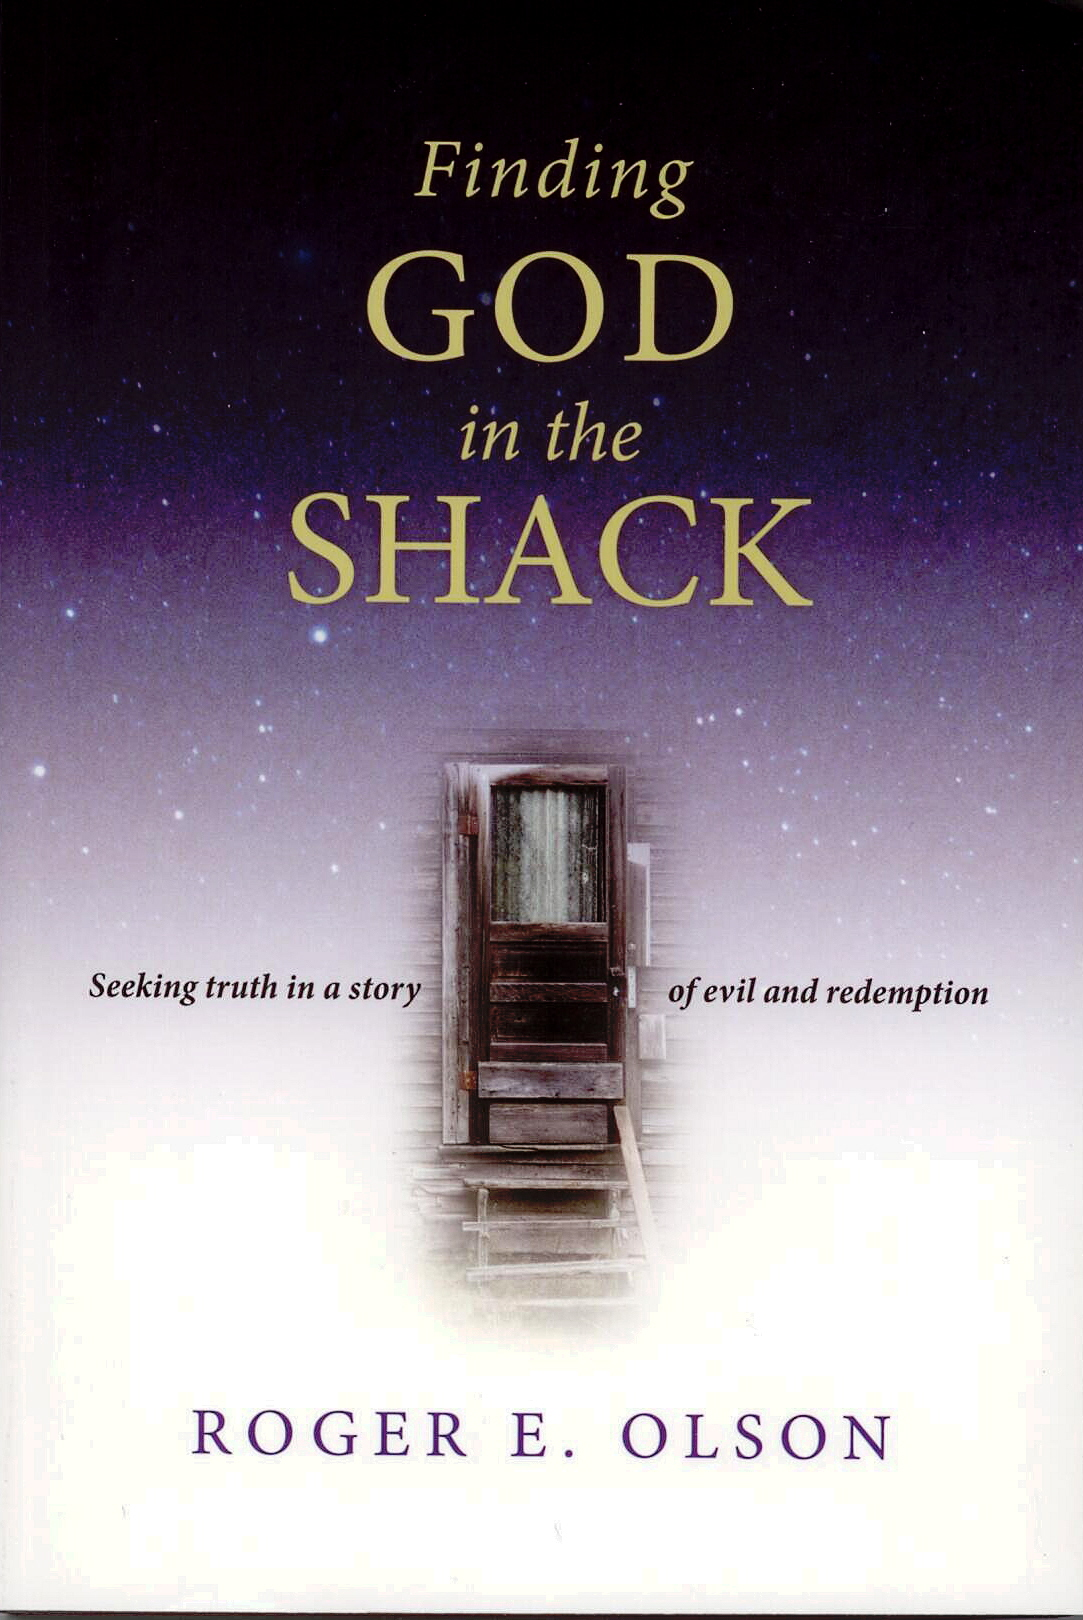 Finding God In The Shack by Roger E. Olson